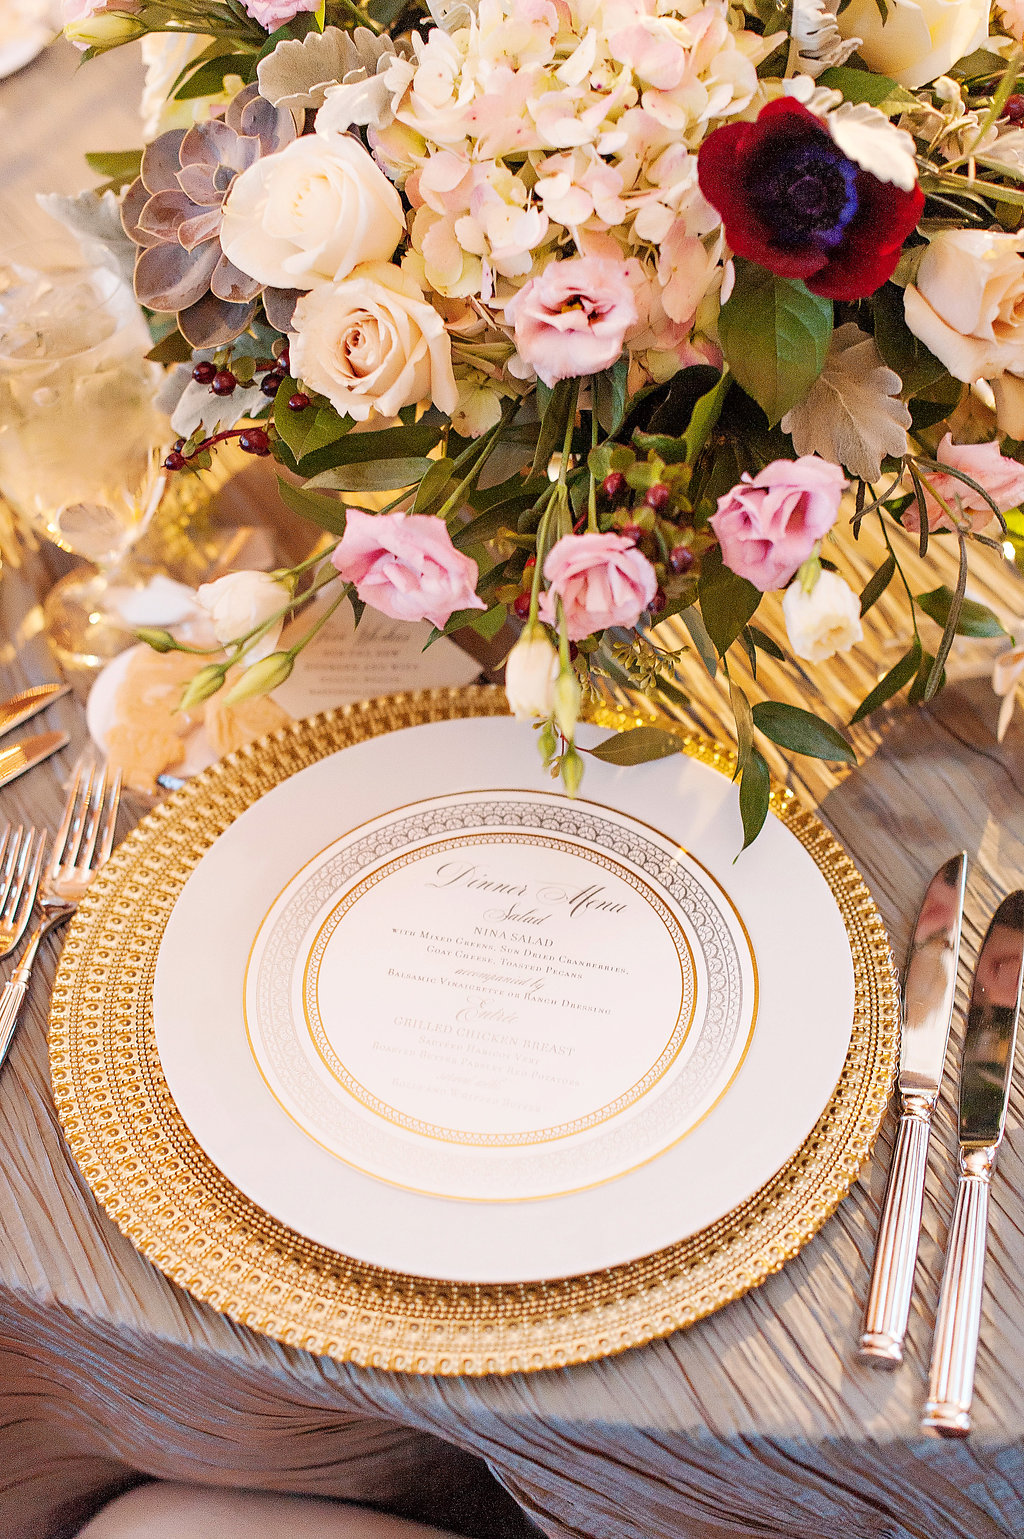 Kortnee Kate Photography | Custom circle wedding dinner menu by Poeme